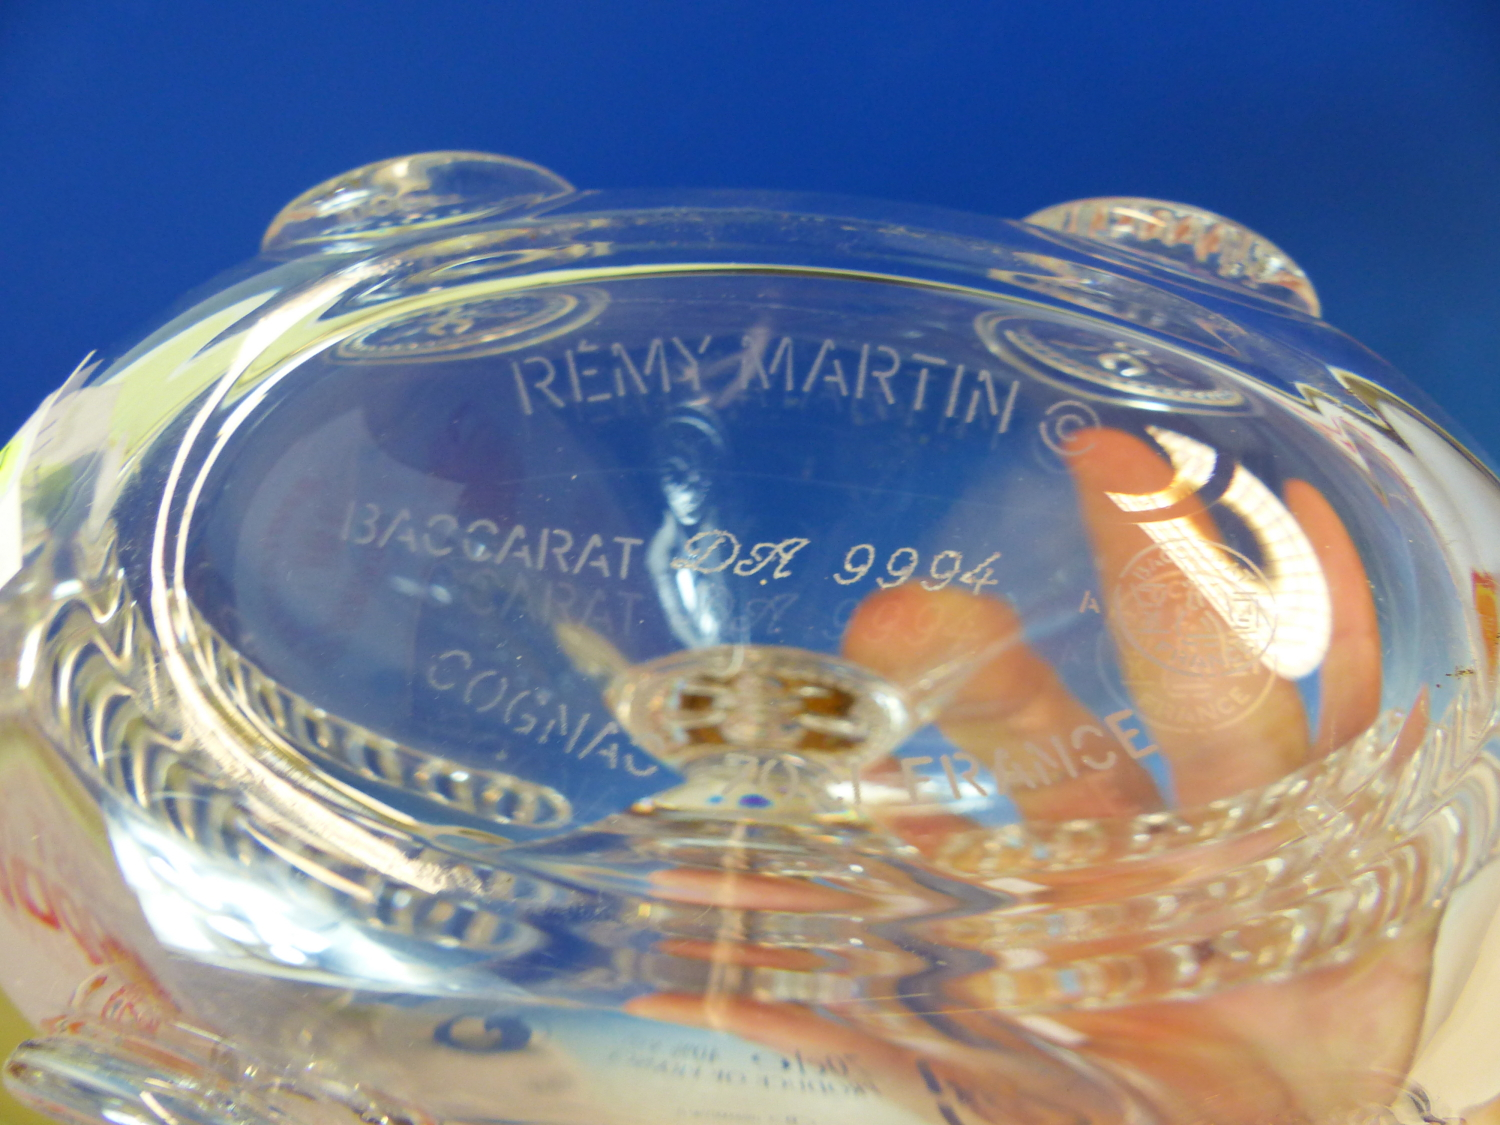 Lot 1768 - A 1994 BACCARAT REMY MARTIN LOUIS XII CHAMPAGNE CONGNAC FLASK MOULDED WITH FLEUR DE LYS ROUNDELS,